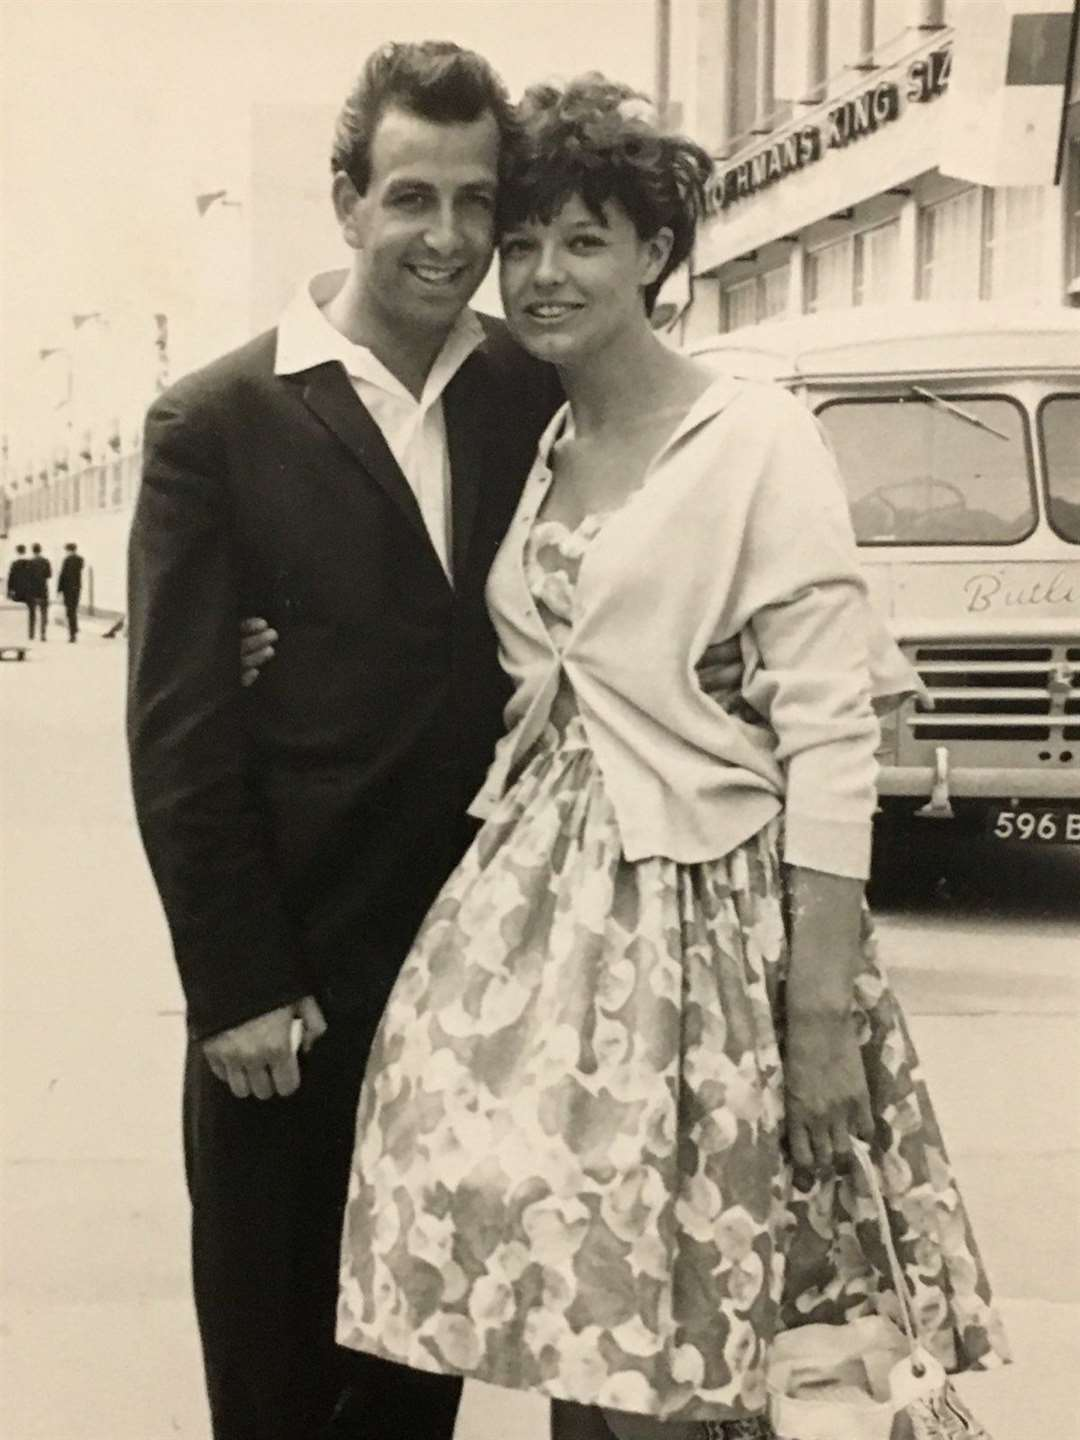 Back then: when comedian Don Maclean, then a Warners' Greencoat, met his wife Toni on the Isle of Sheppey in 1963 (23614369)